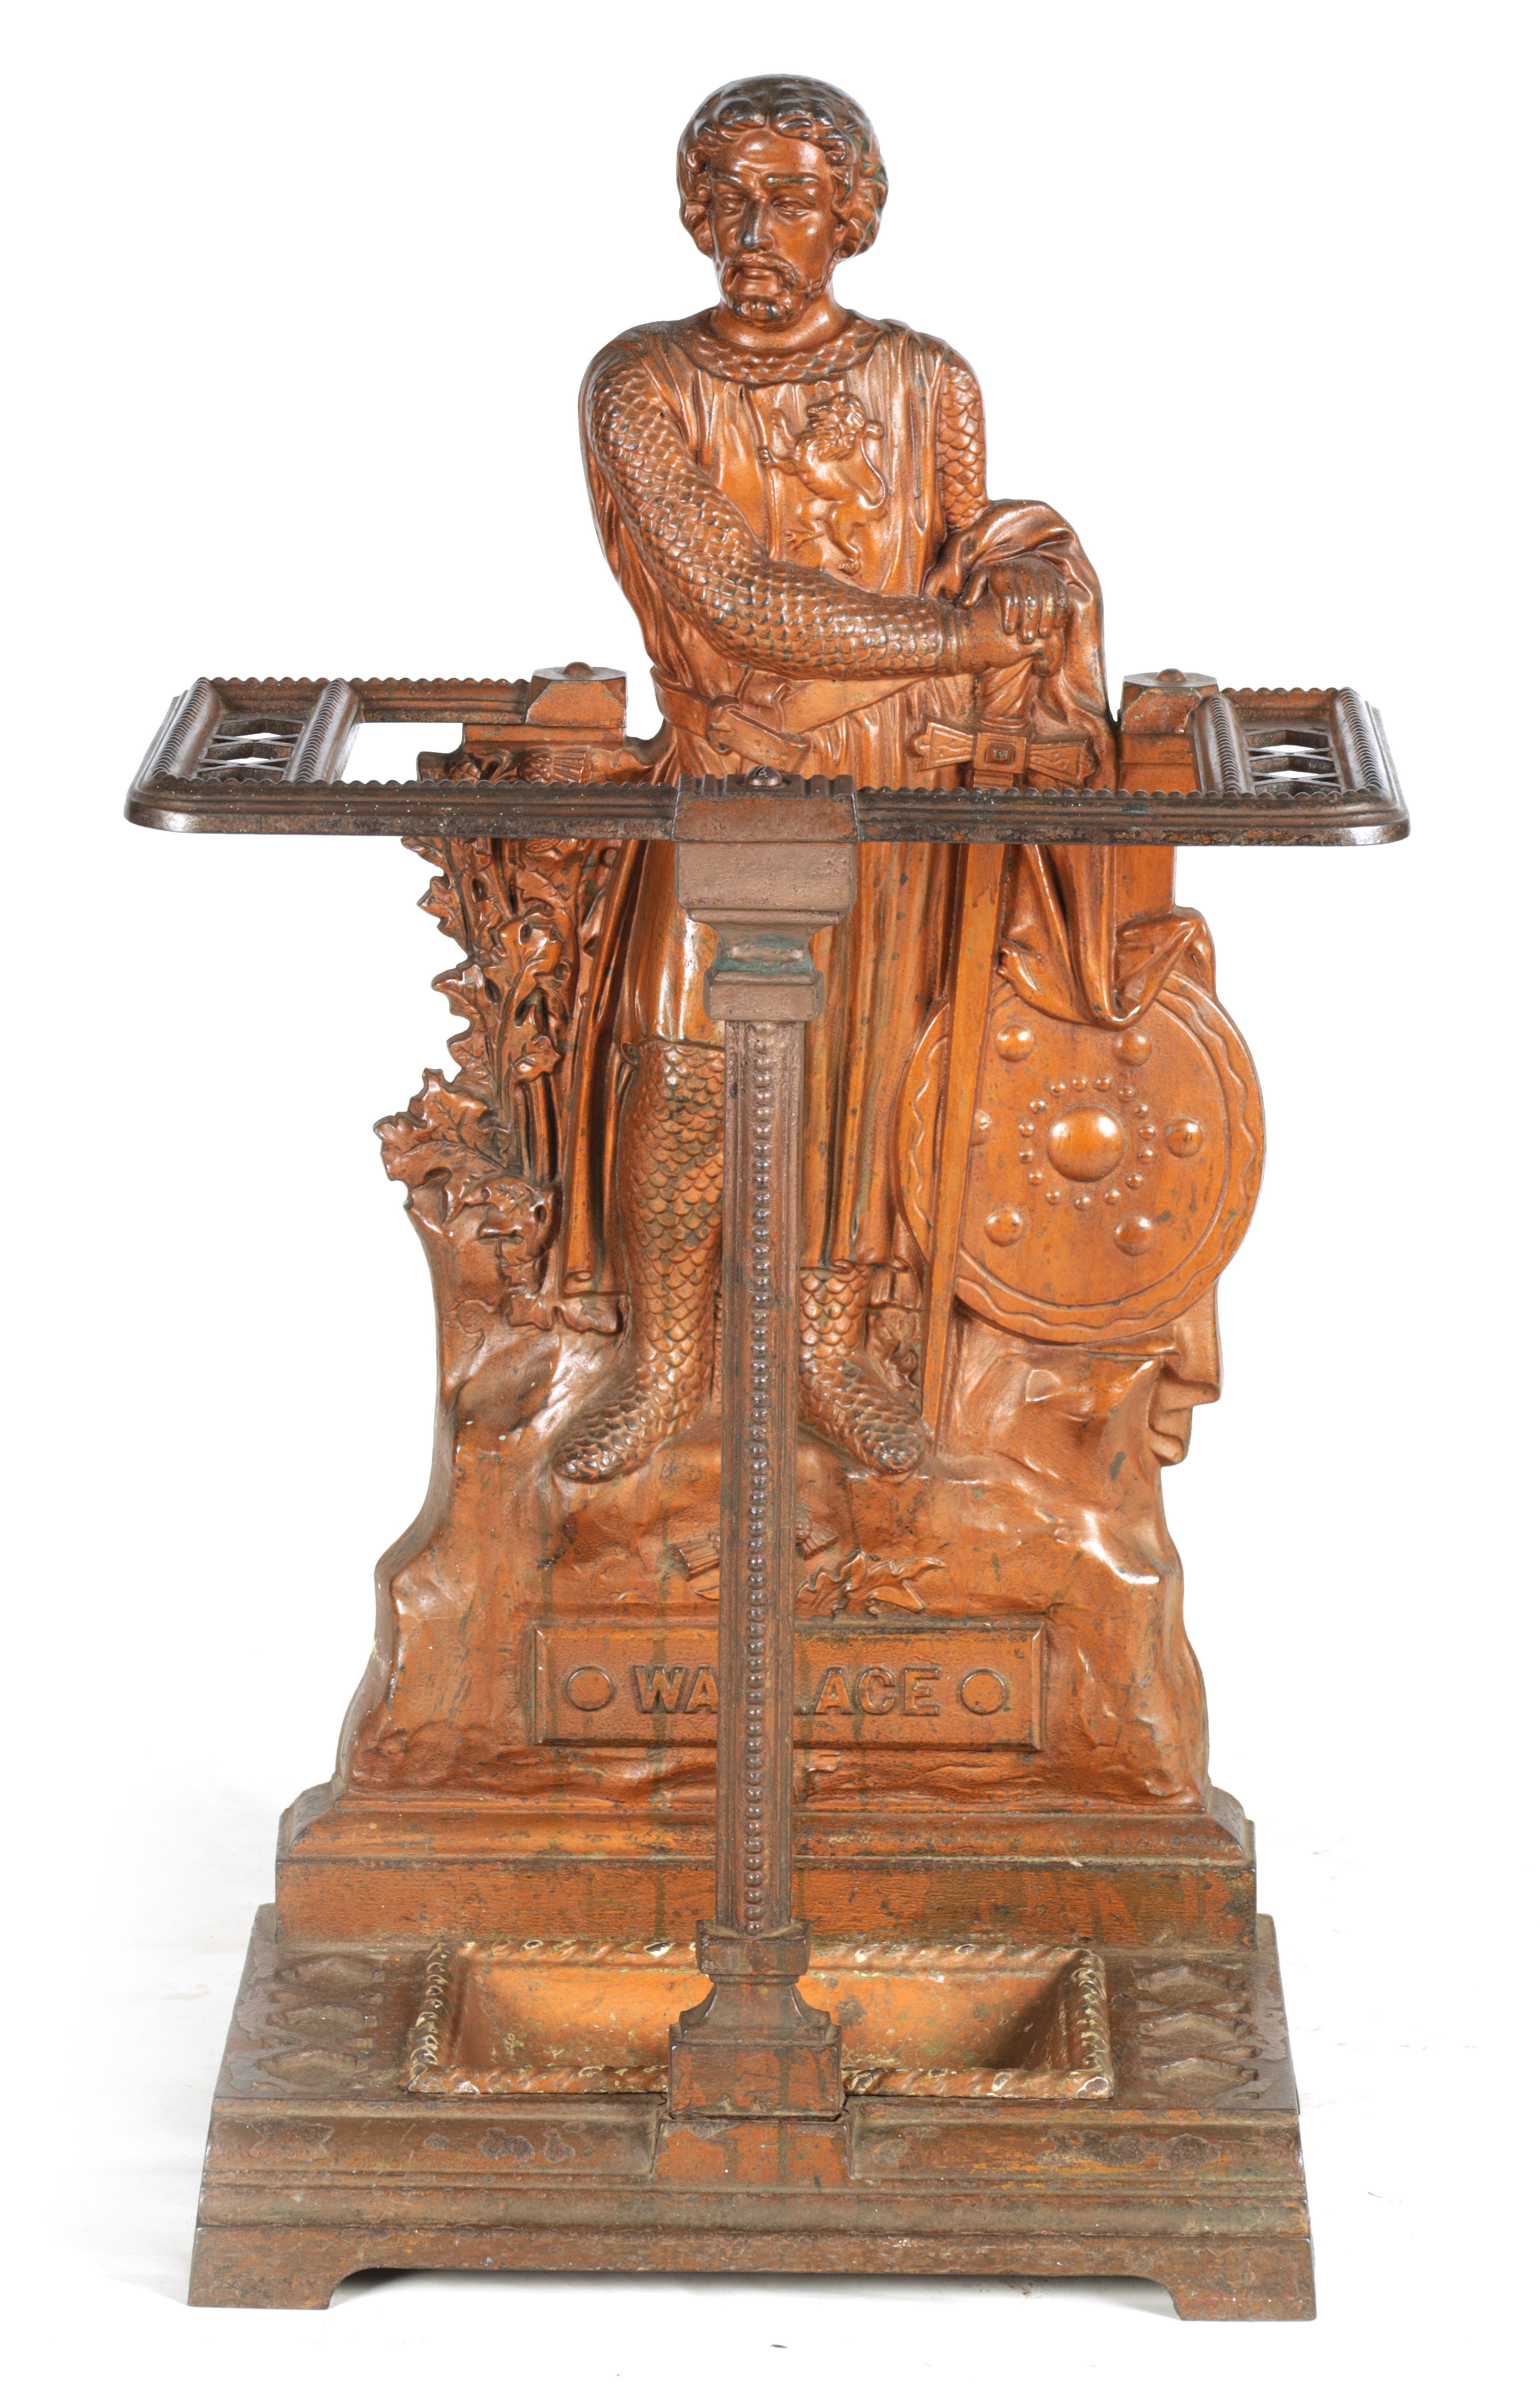 A LATE 19TH CENTURY PAINTED CAST IRON COALBROOKEDALE STYLE STICK STAND DEPICTING WILLIAM WALLACE